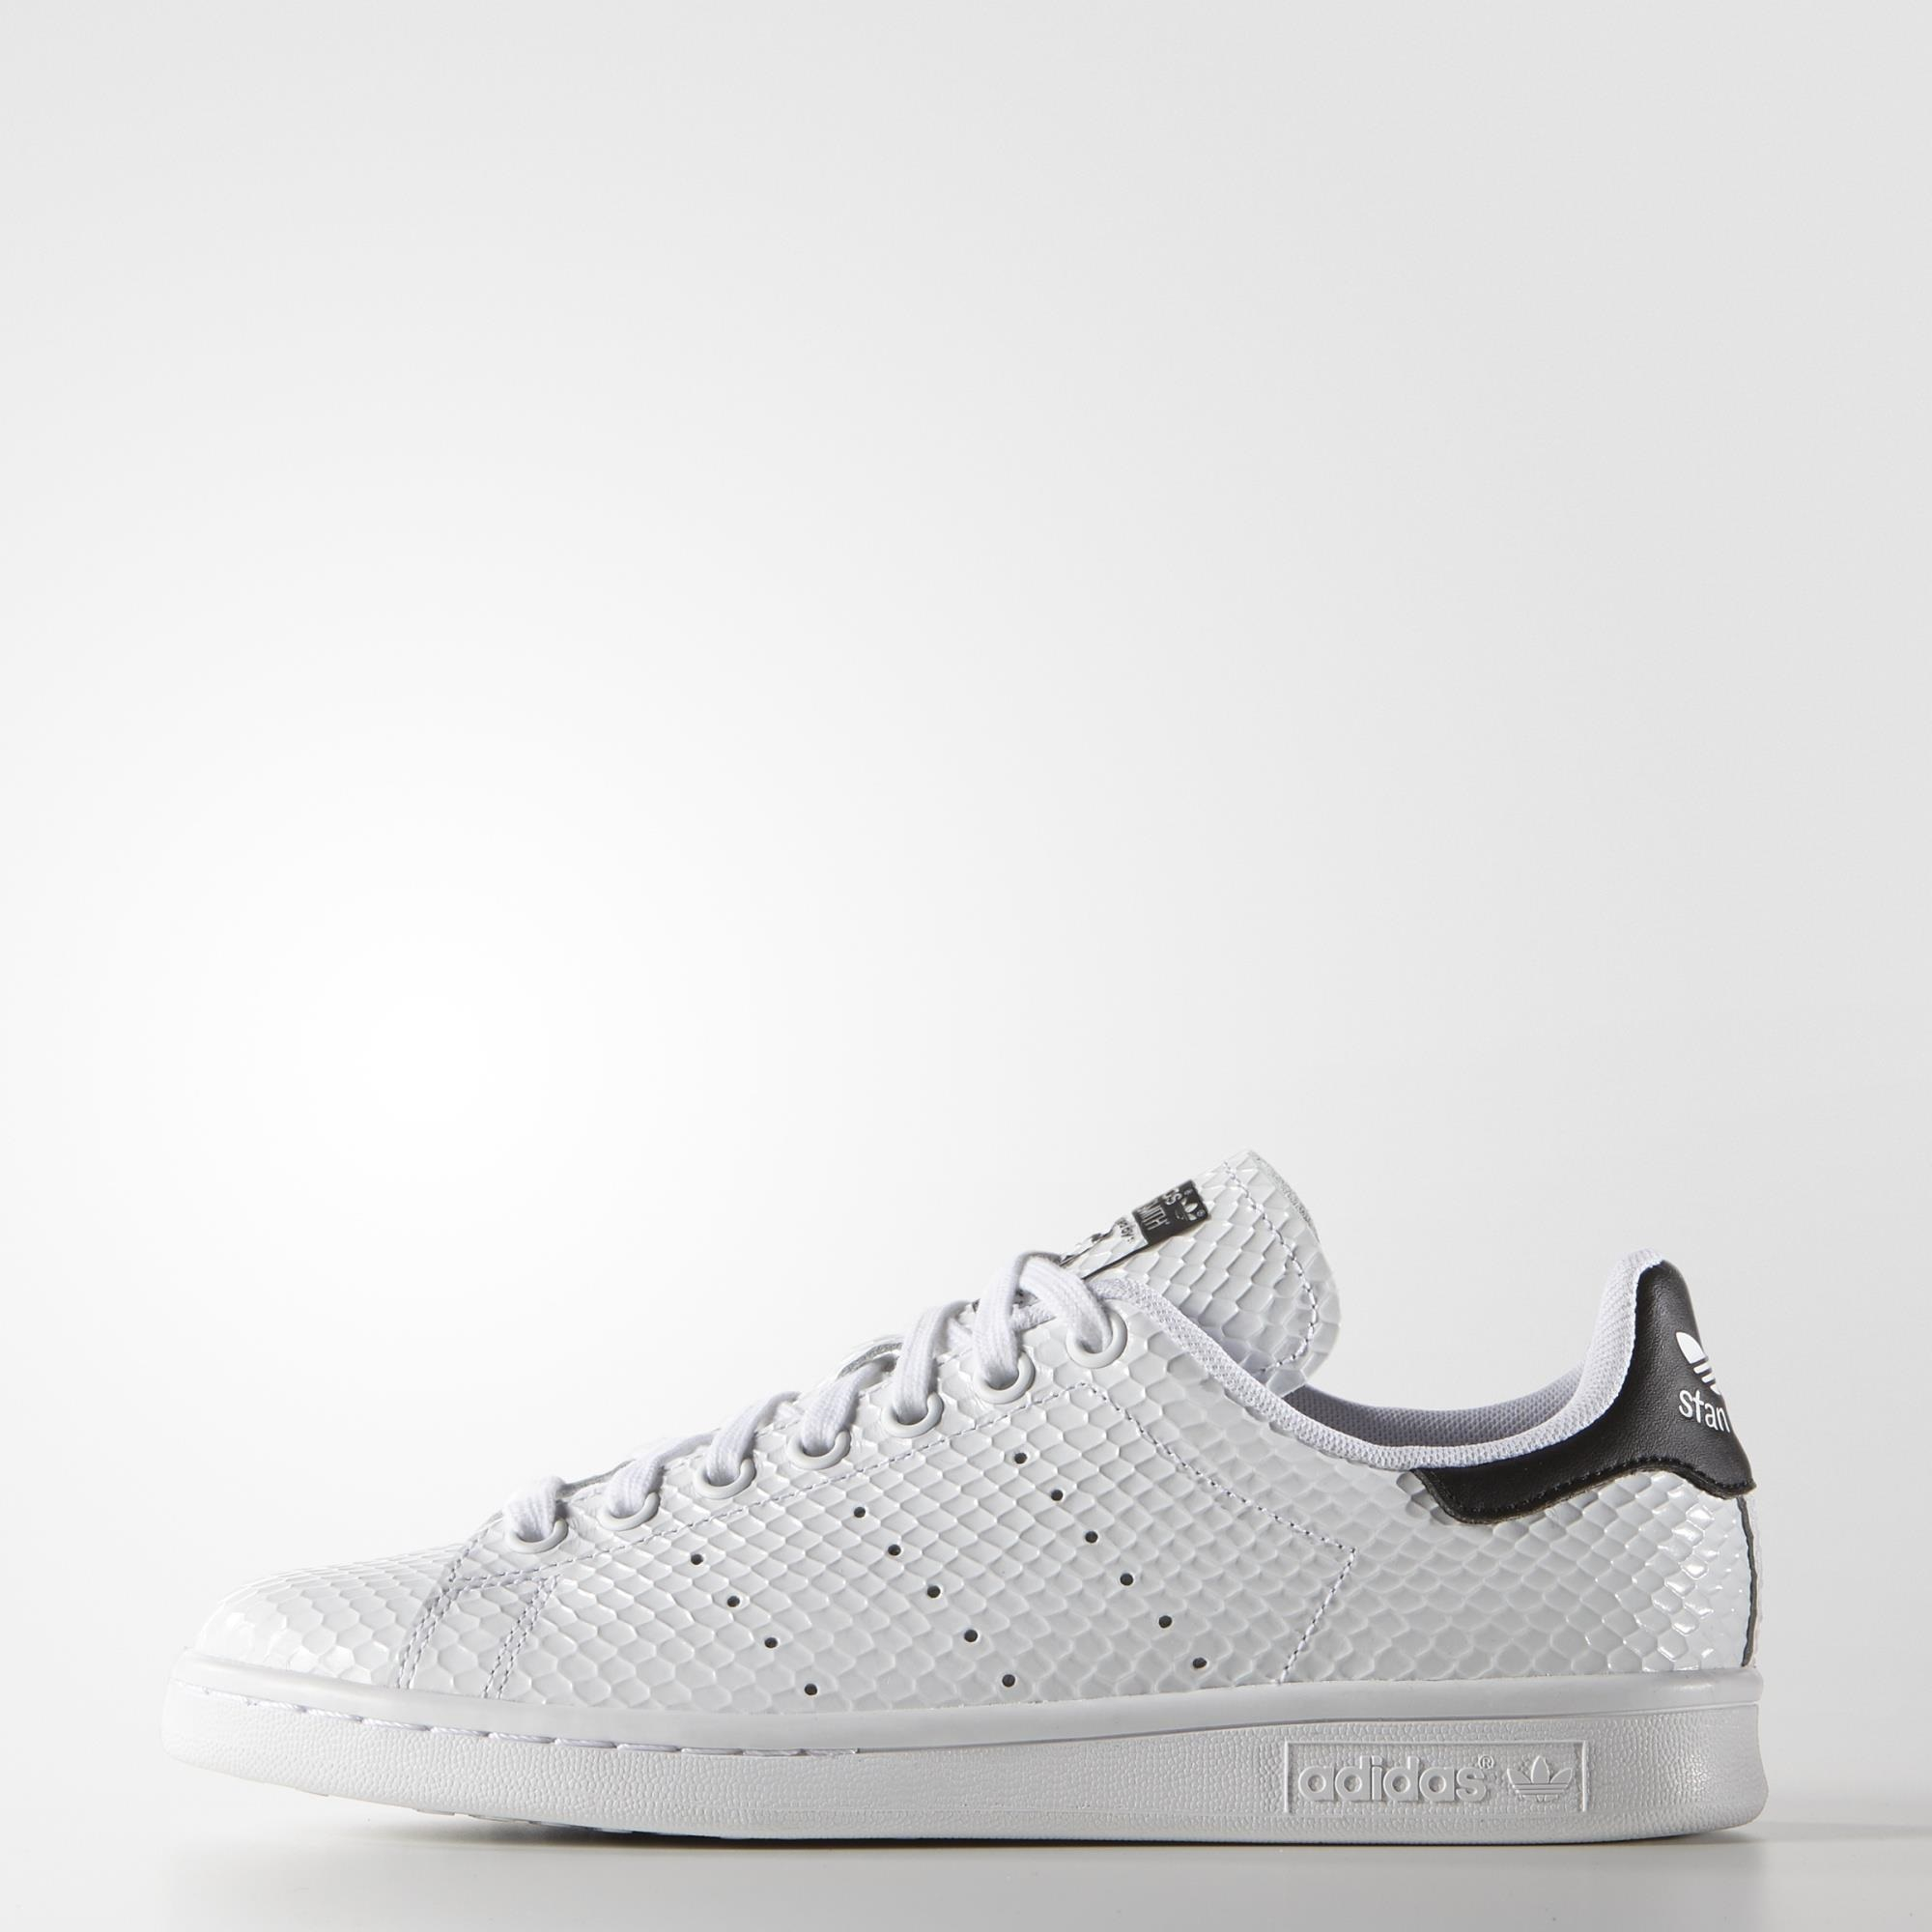 2stan smith adidas donna bianco e nero